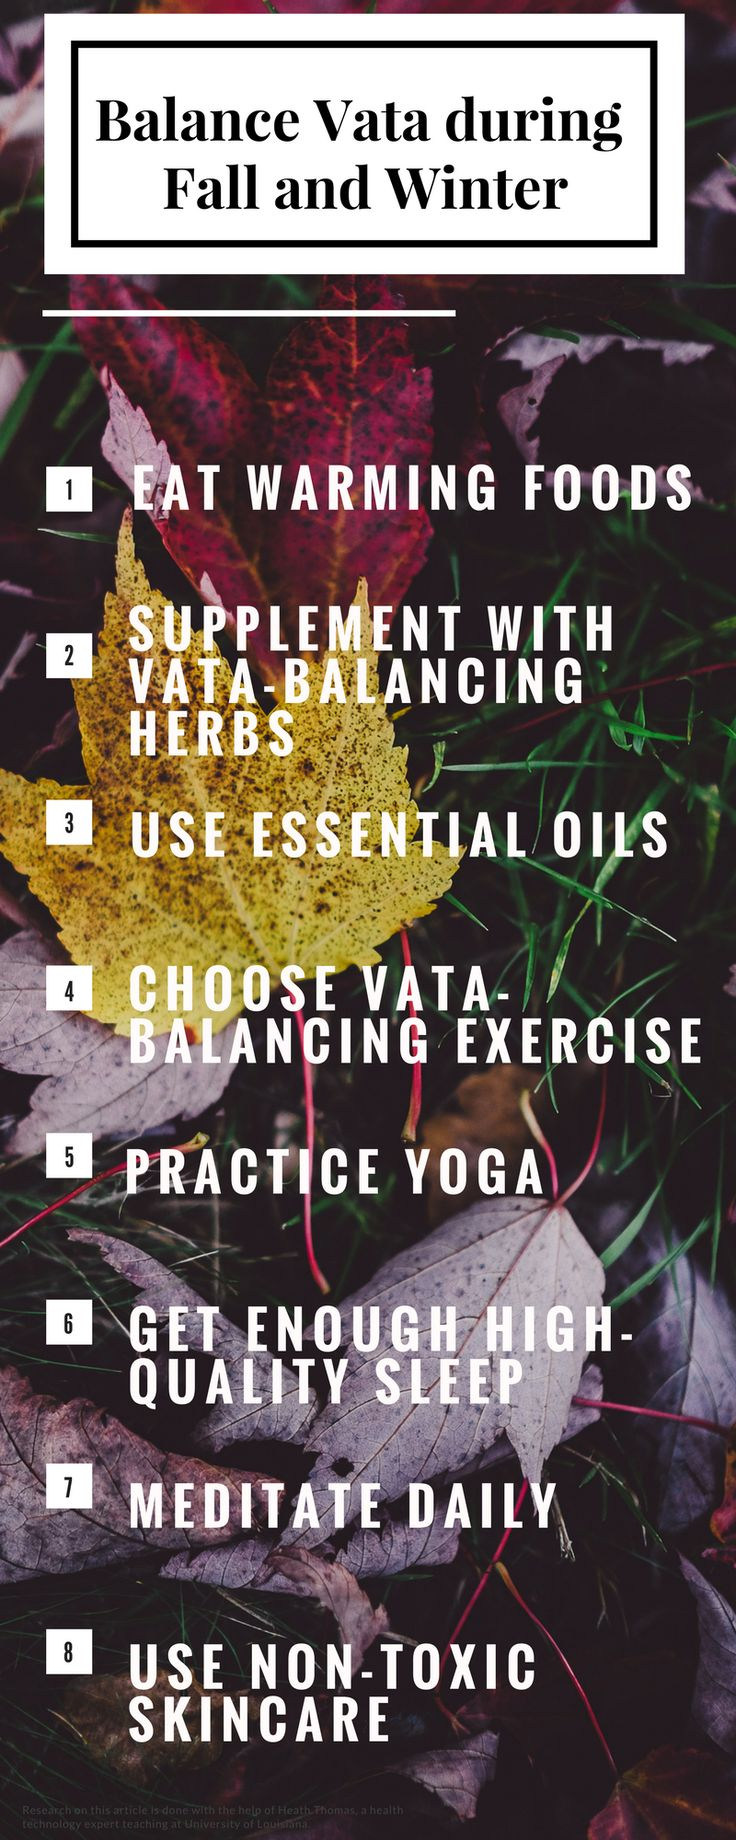 Stay healthy during Fall and Winter by balancing Vata